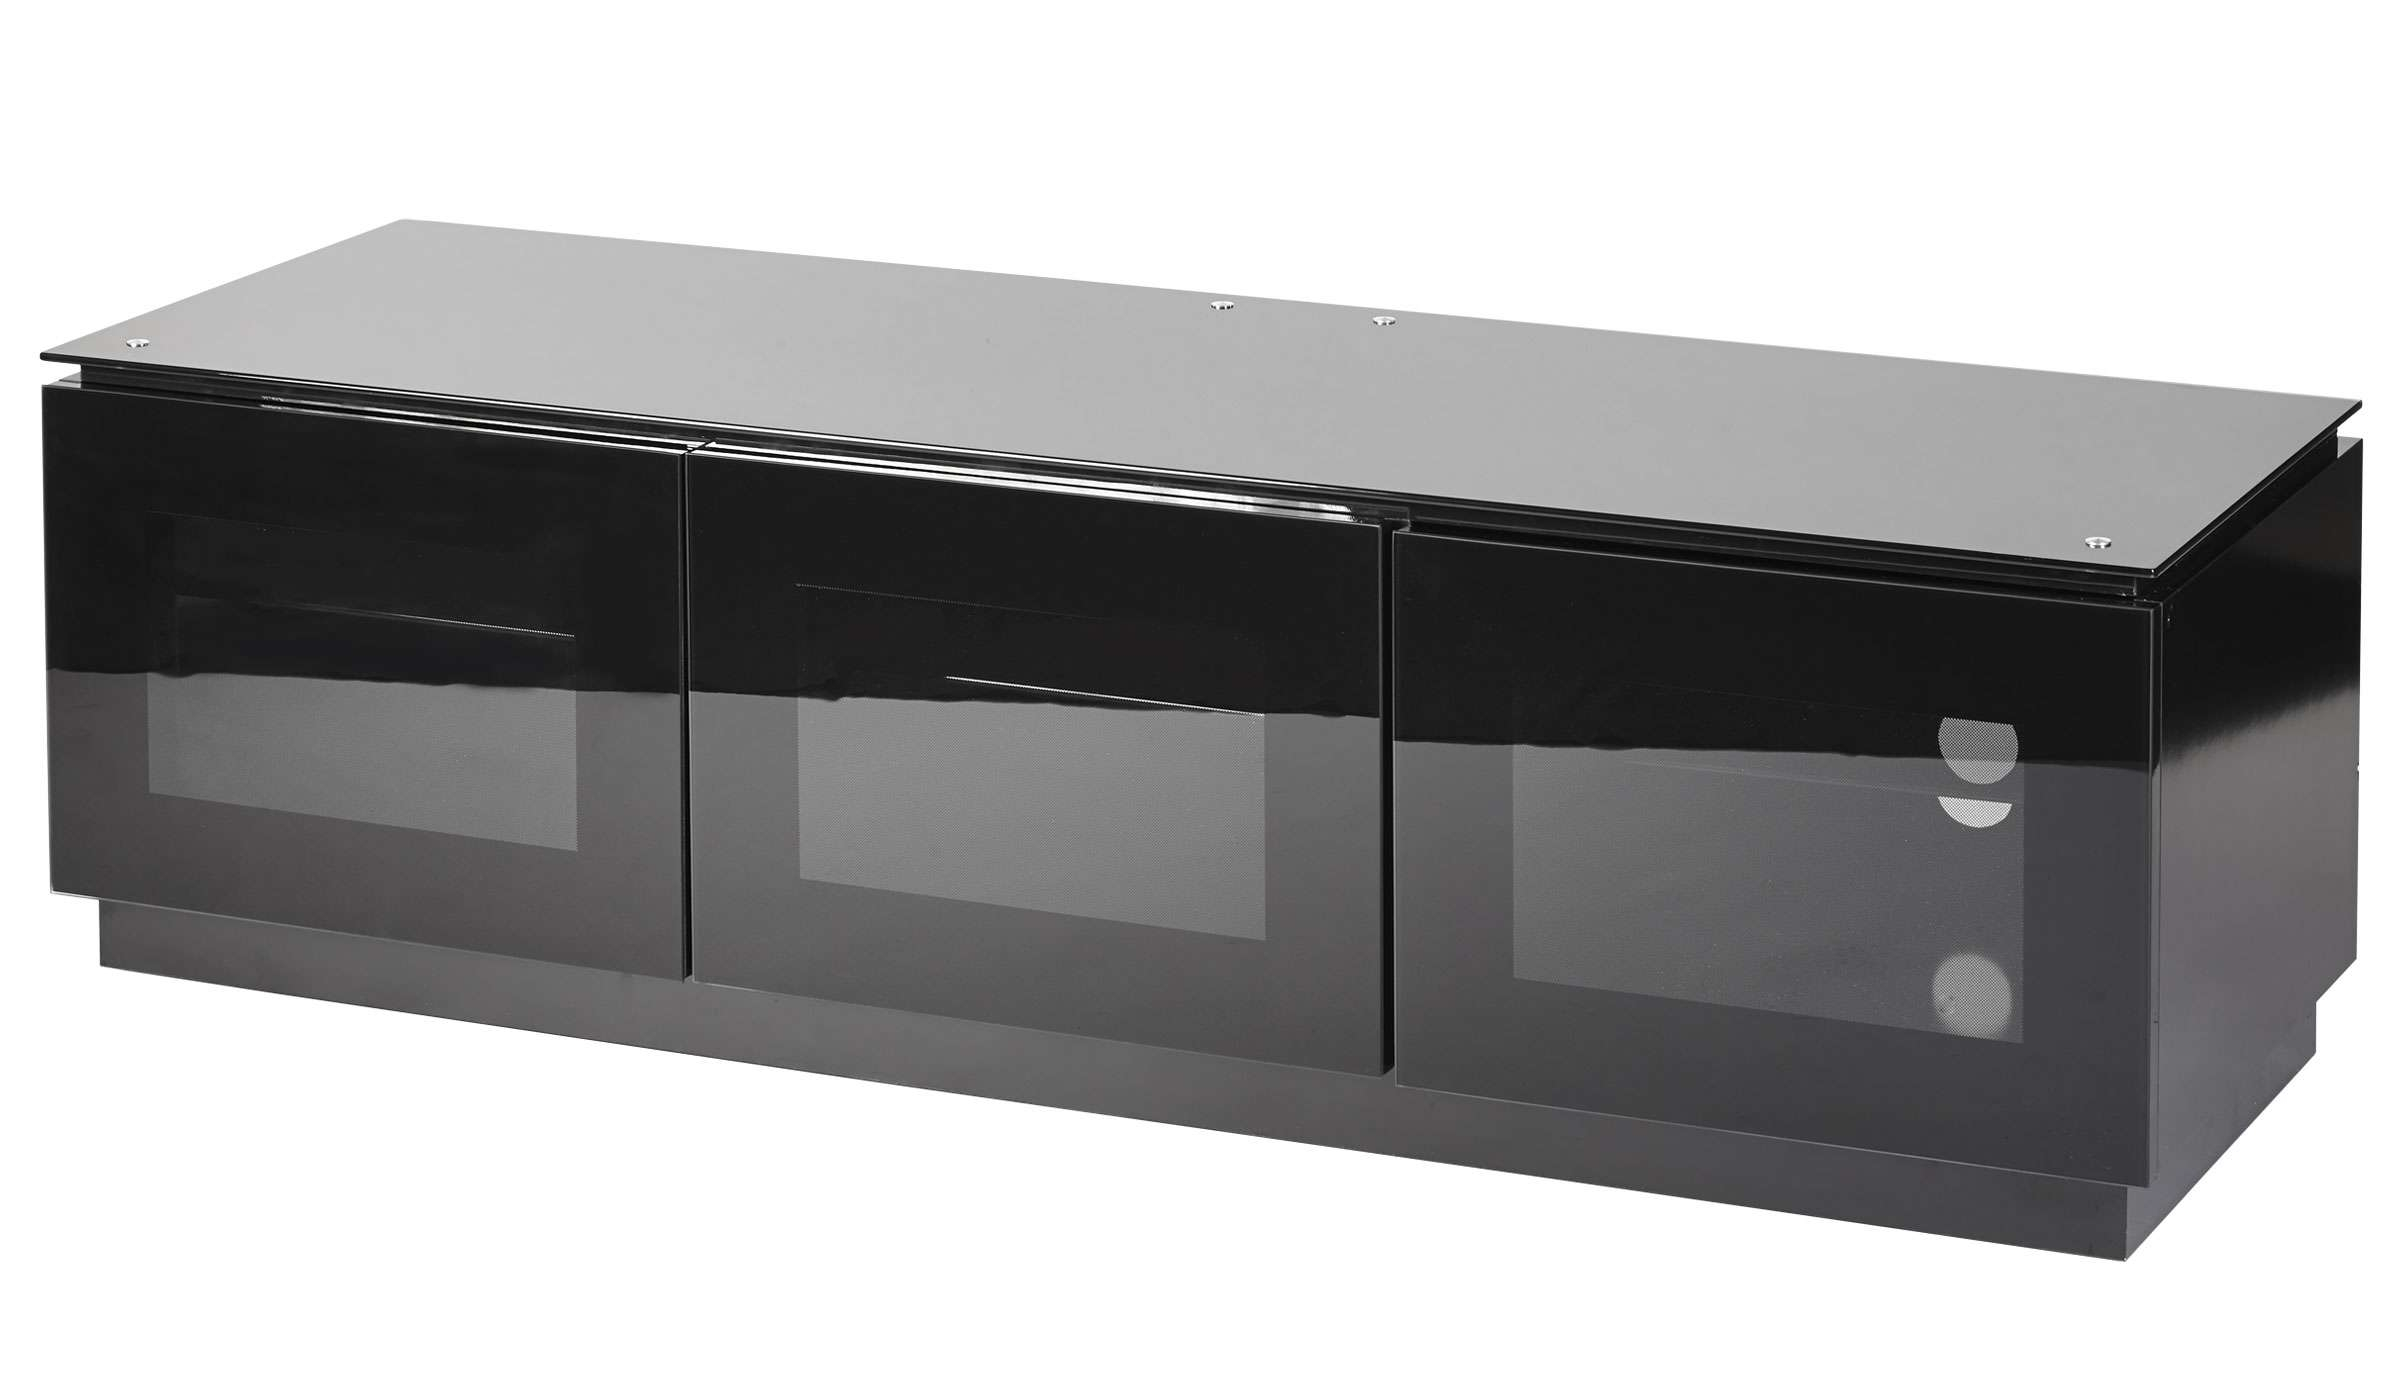 Black Gloss Tv Unit Up To 65 Inch Flat Tv | Mmt D1500 Throughout Black Tv Cabinets With Doors (View 6 of 20)